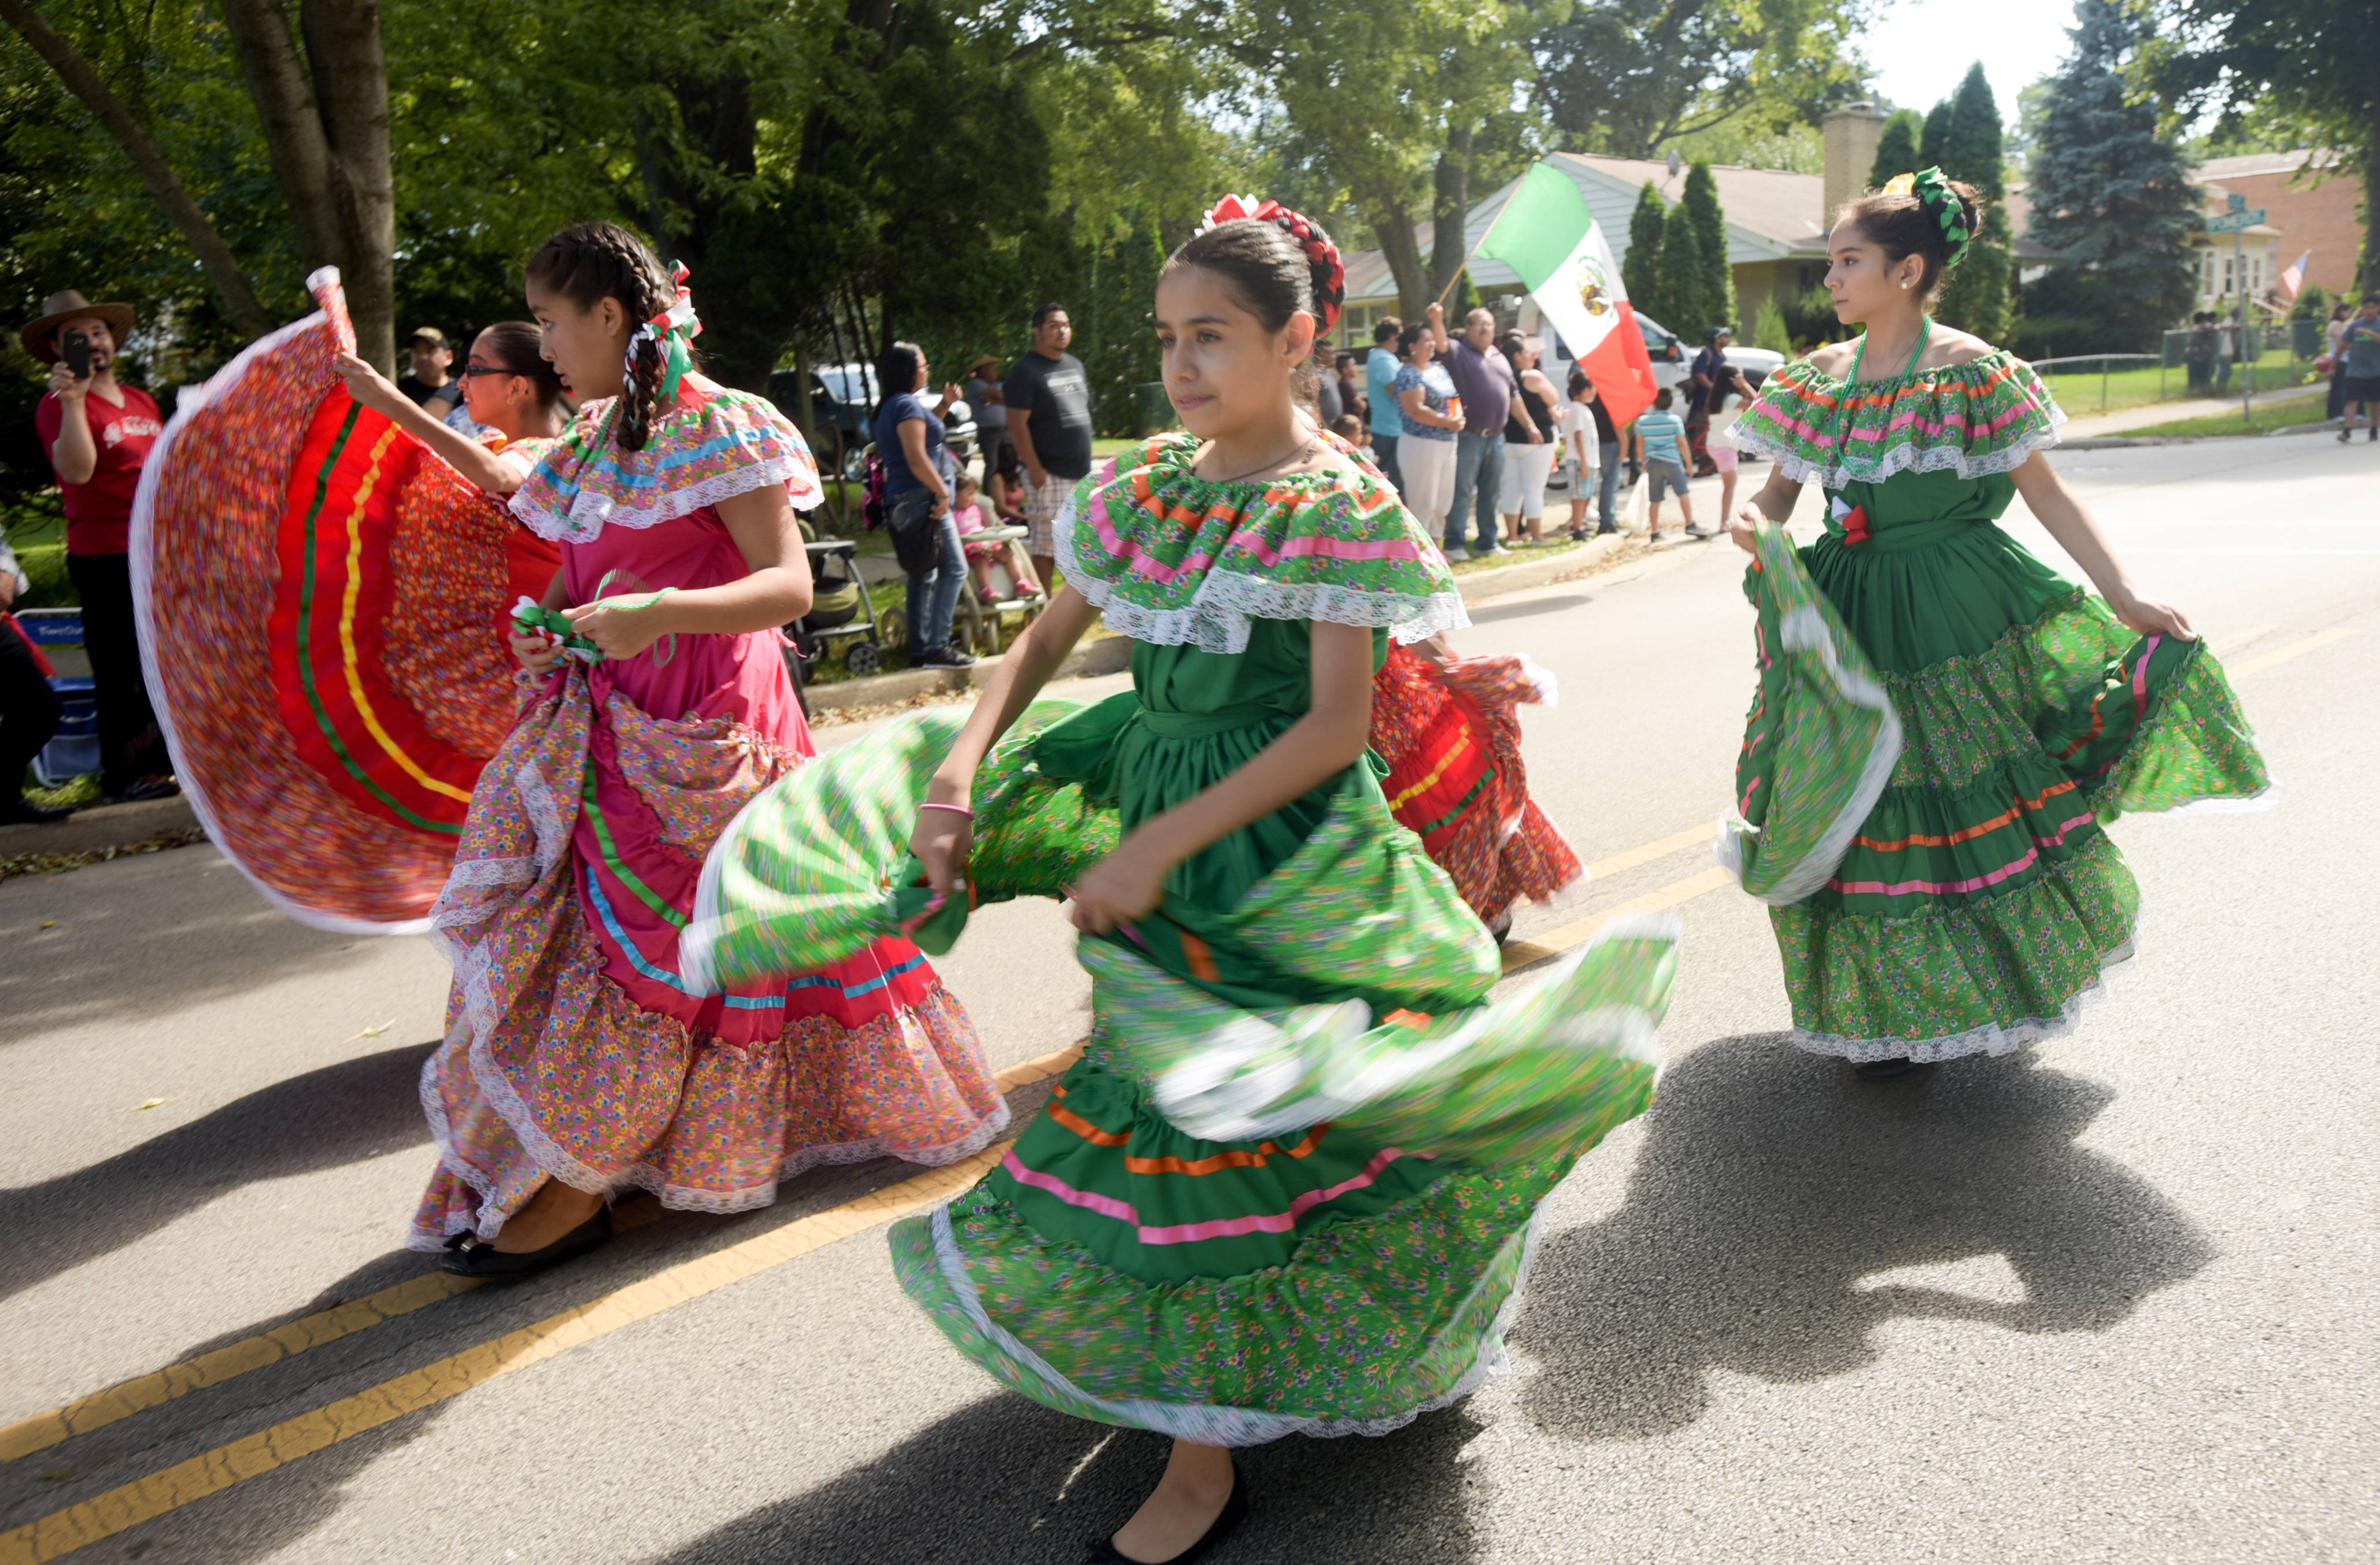 West Chicago will celebrate the community's heritage with a two-day Mexican Independence Day festival featuring food, music, a parade and performances.